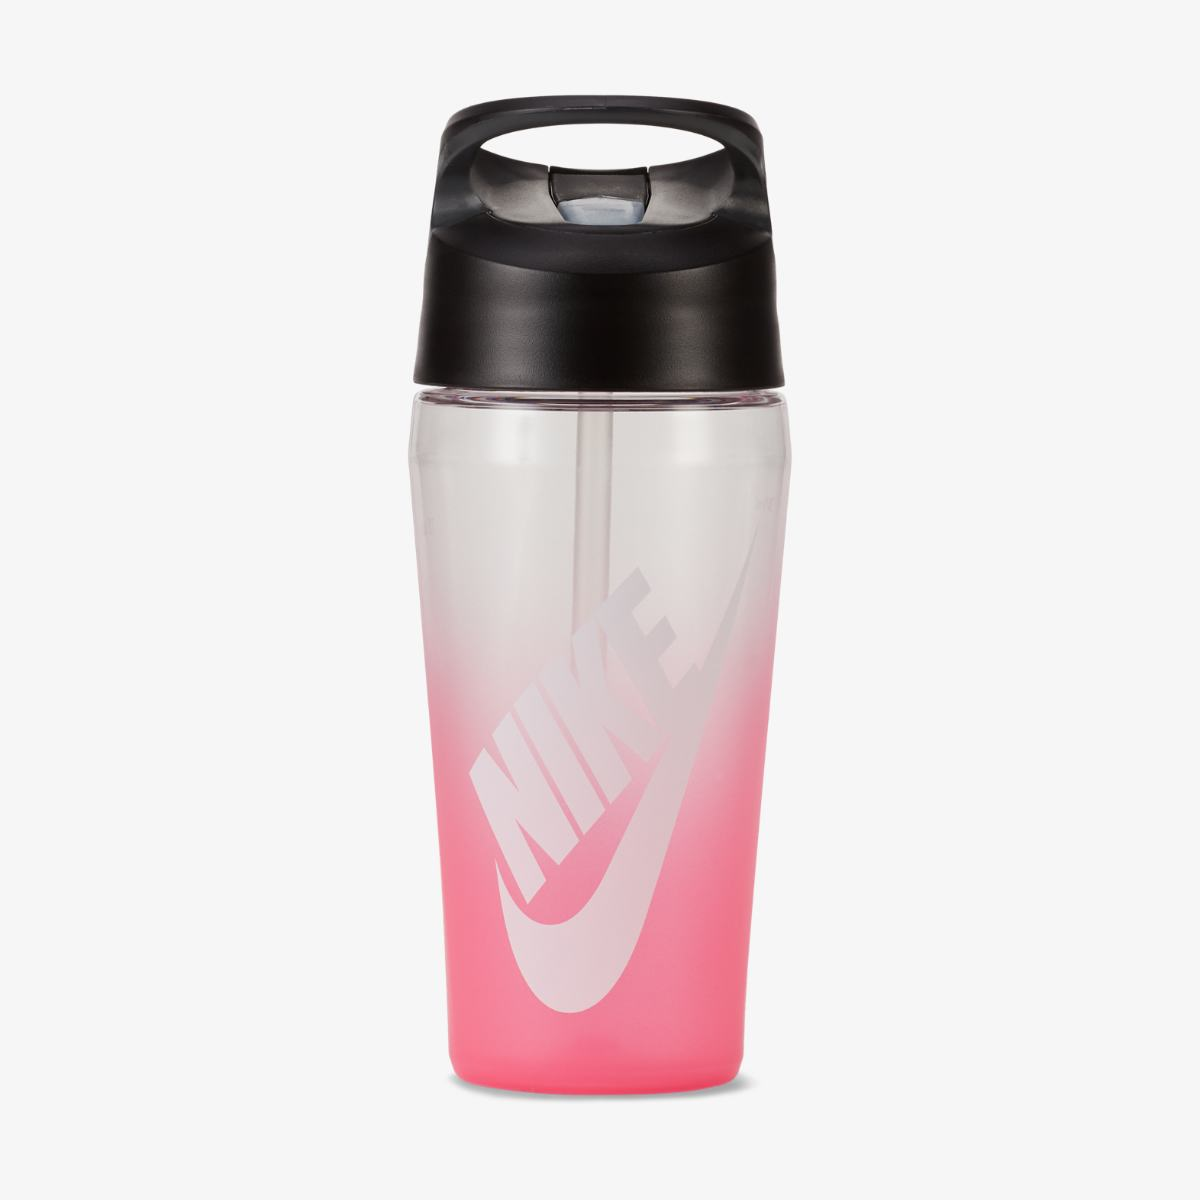 Бутылка Nike TR HYPERCHARGE STRAW BOTTLE GRAPHIC 16 OZ DIGITAL PINK/ANTHRACITE/WHITE 16OZ